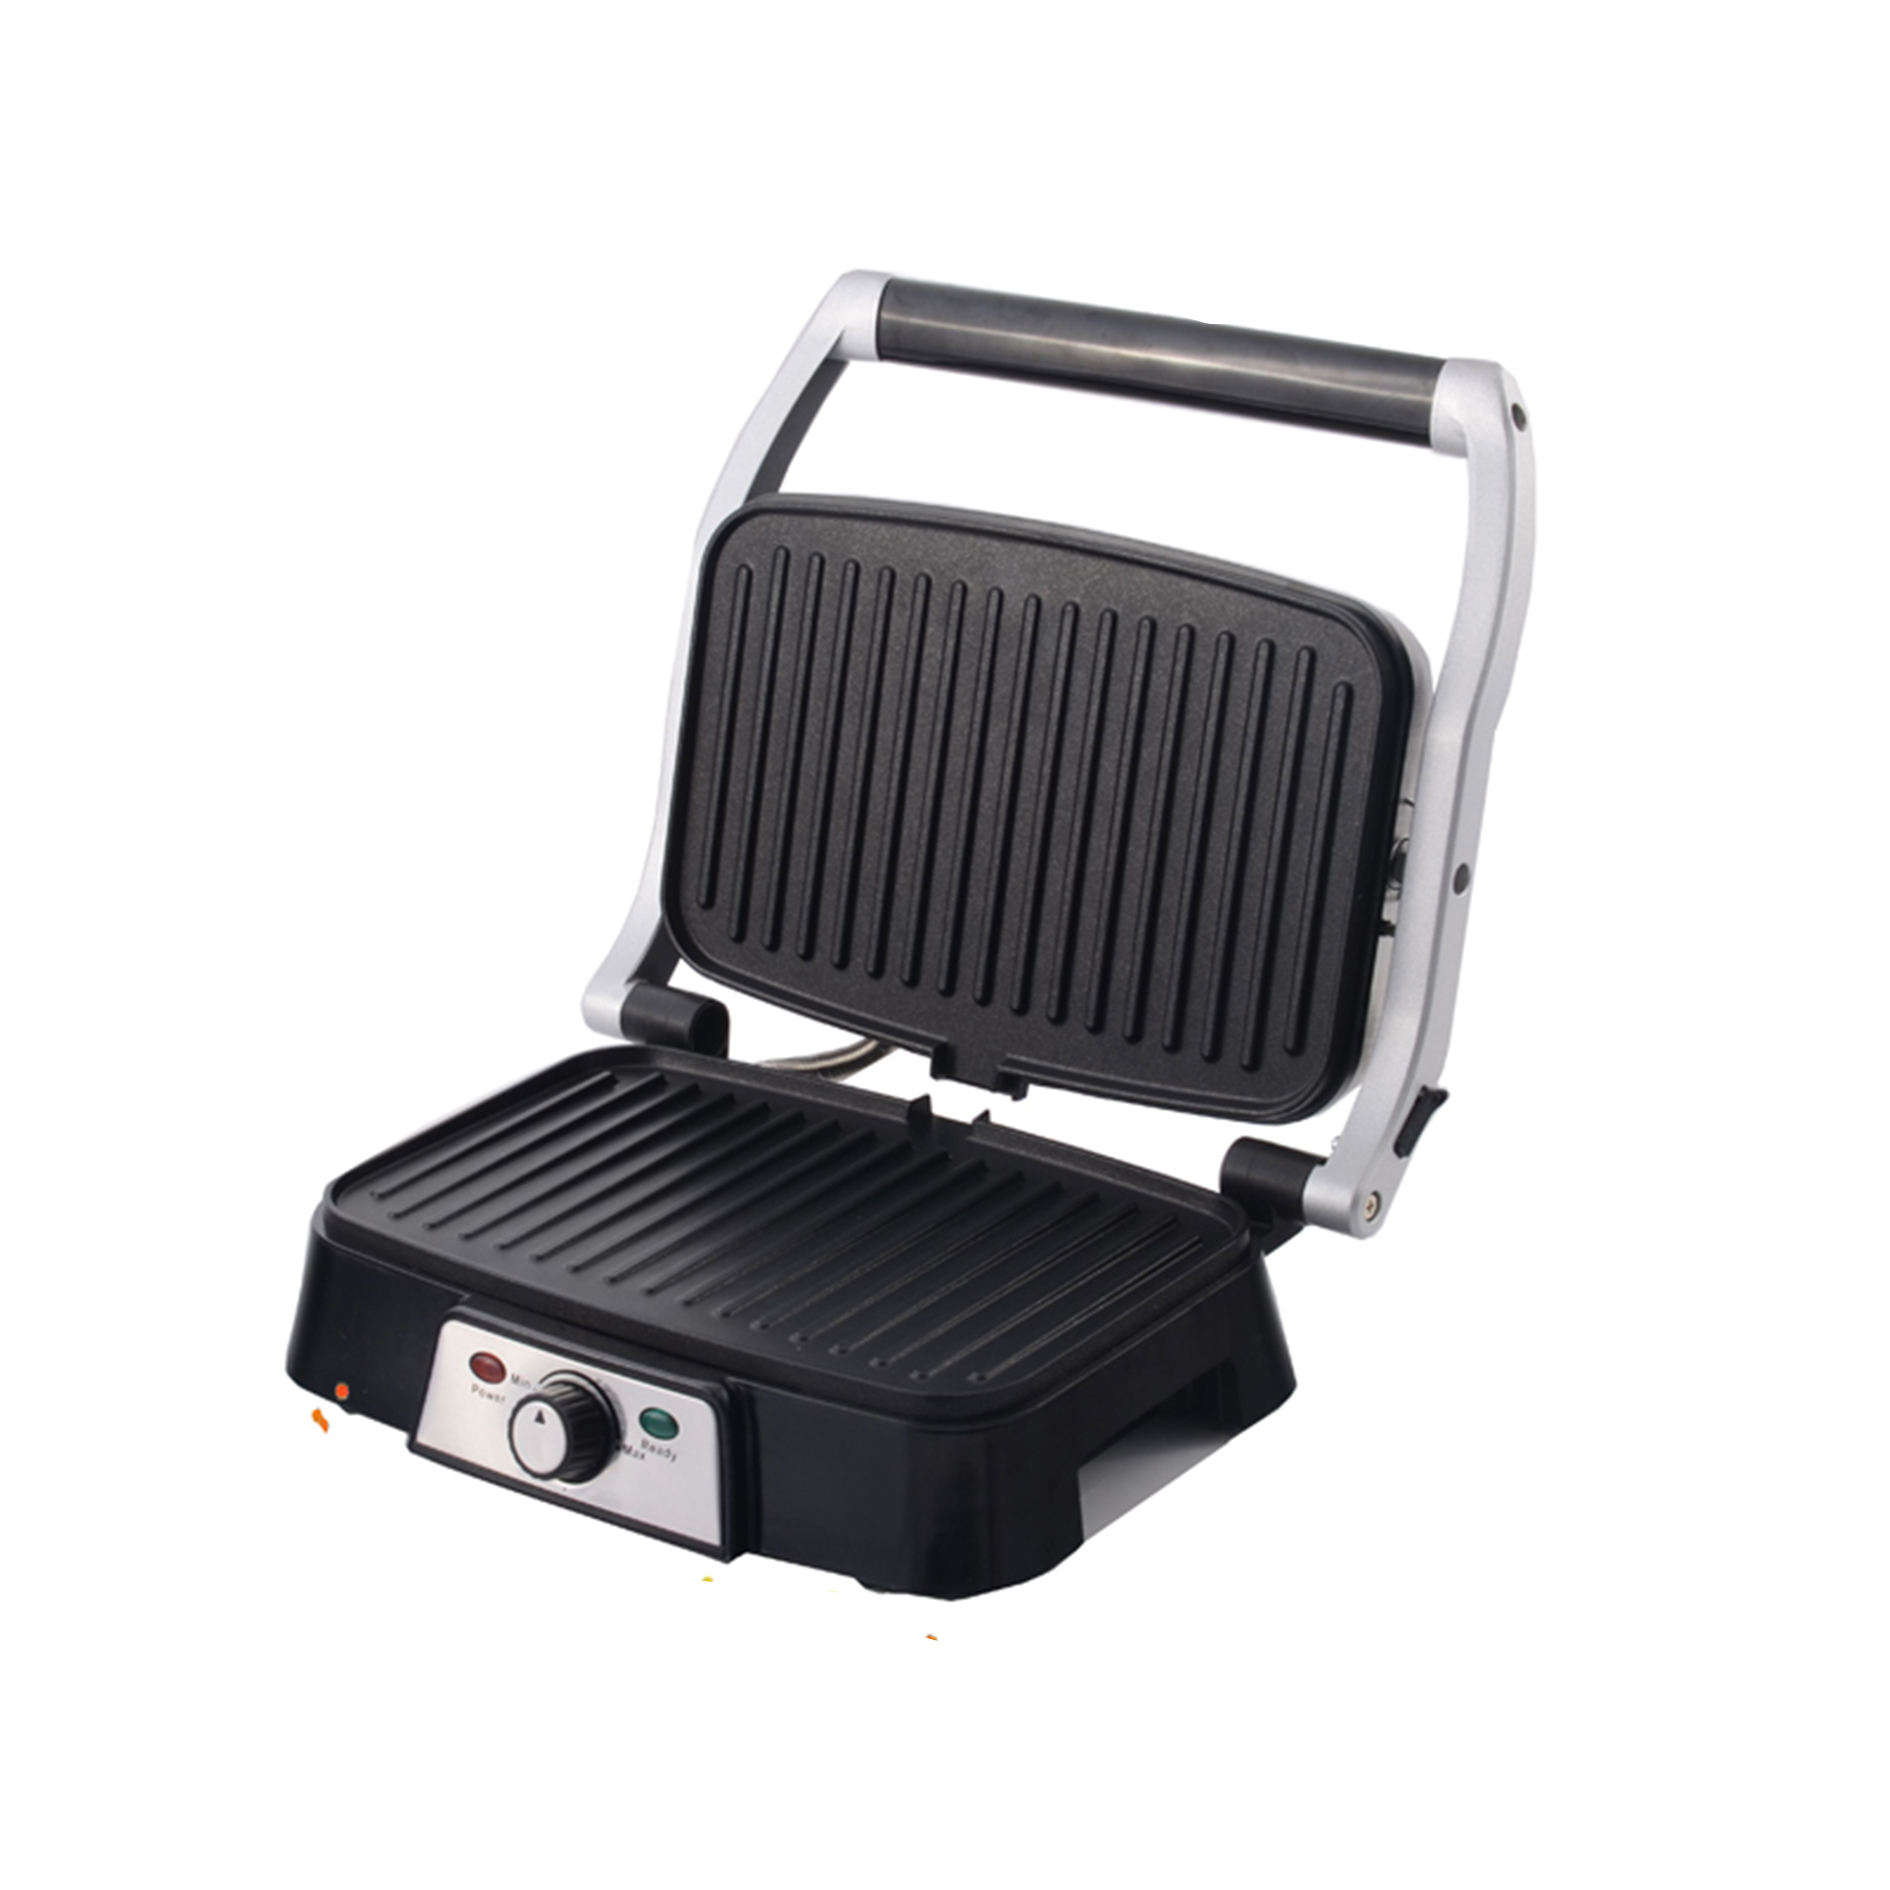 Mini Electric BBQ Grill Kitchen Cooking Appliance Grill 6/8 Slice Sandwich Maker Contact Panini Press Grill